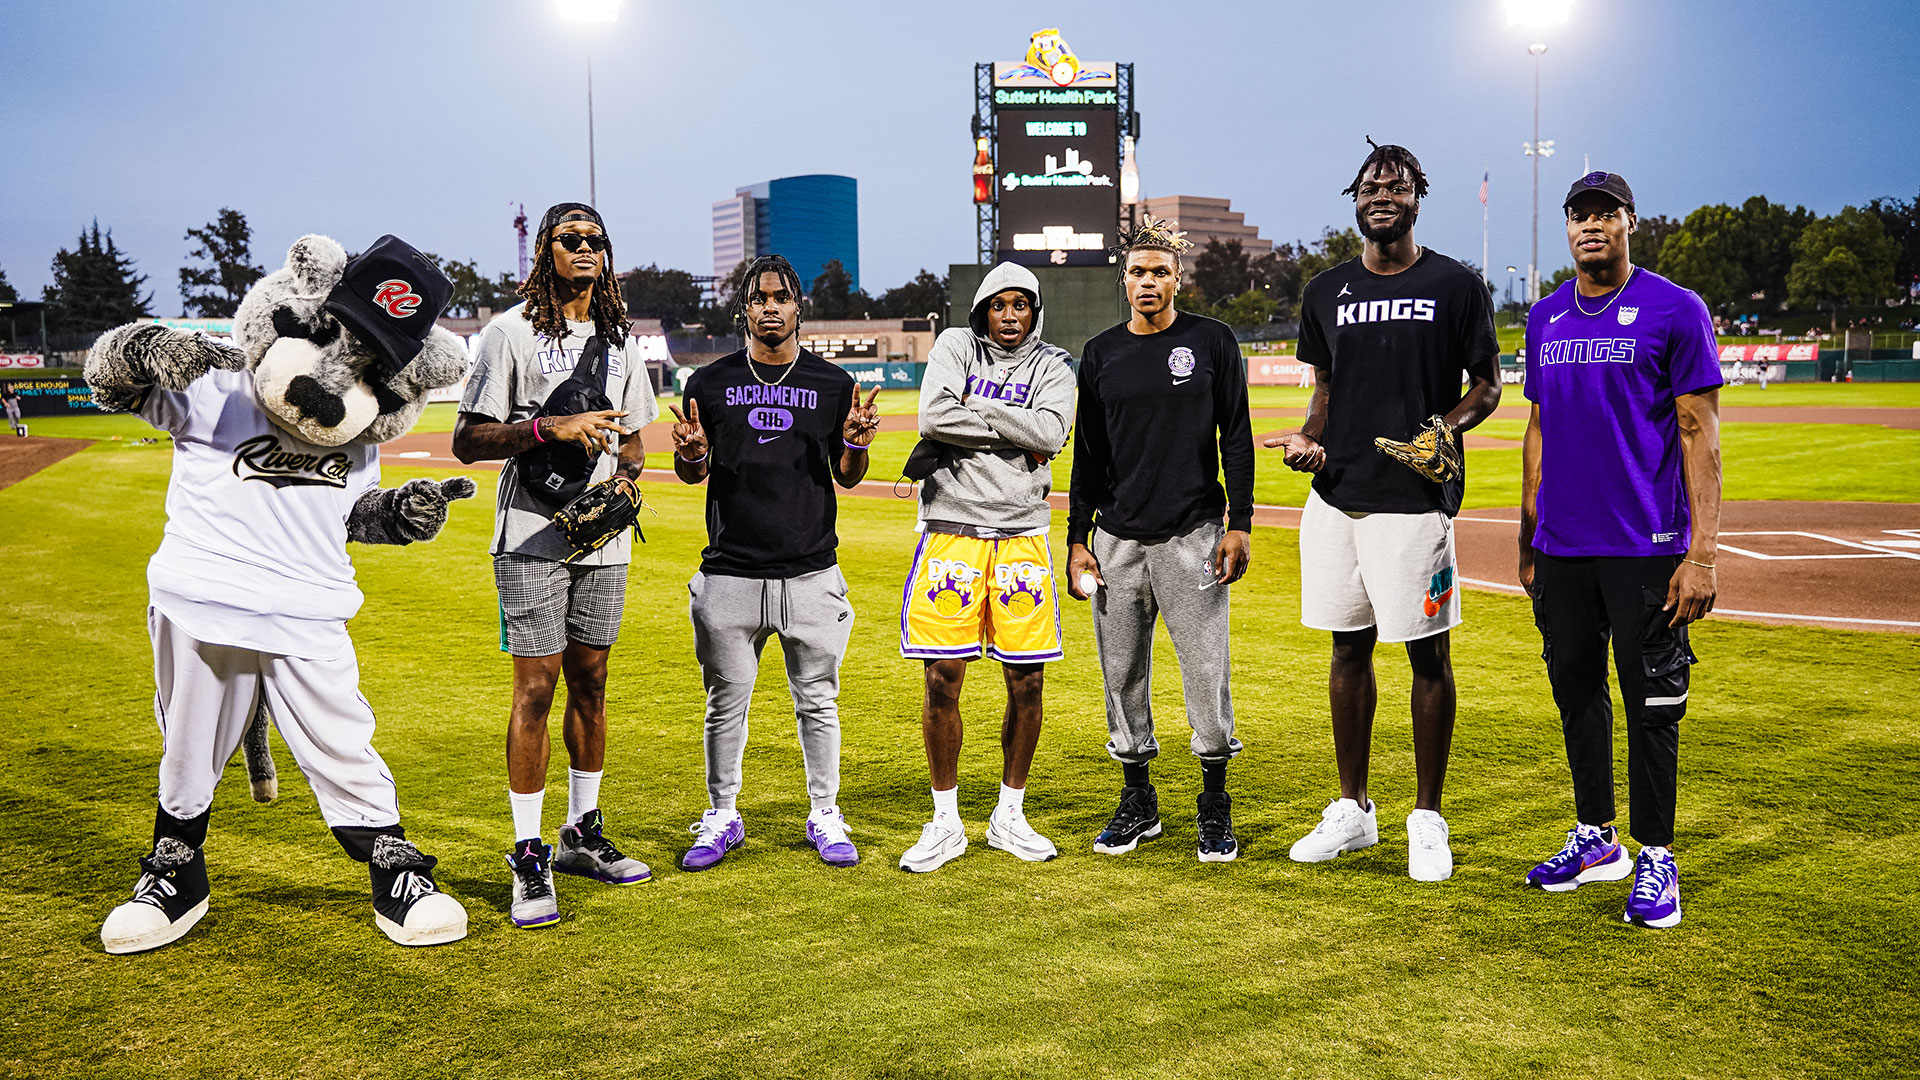 Kings Throw out First Pitch at River Cats Game